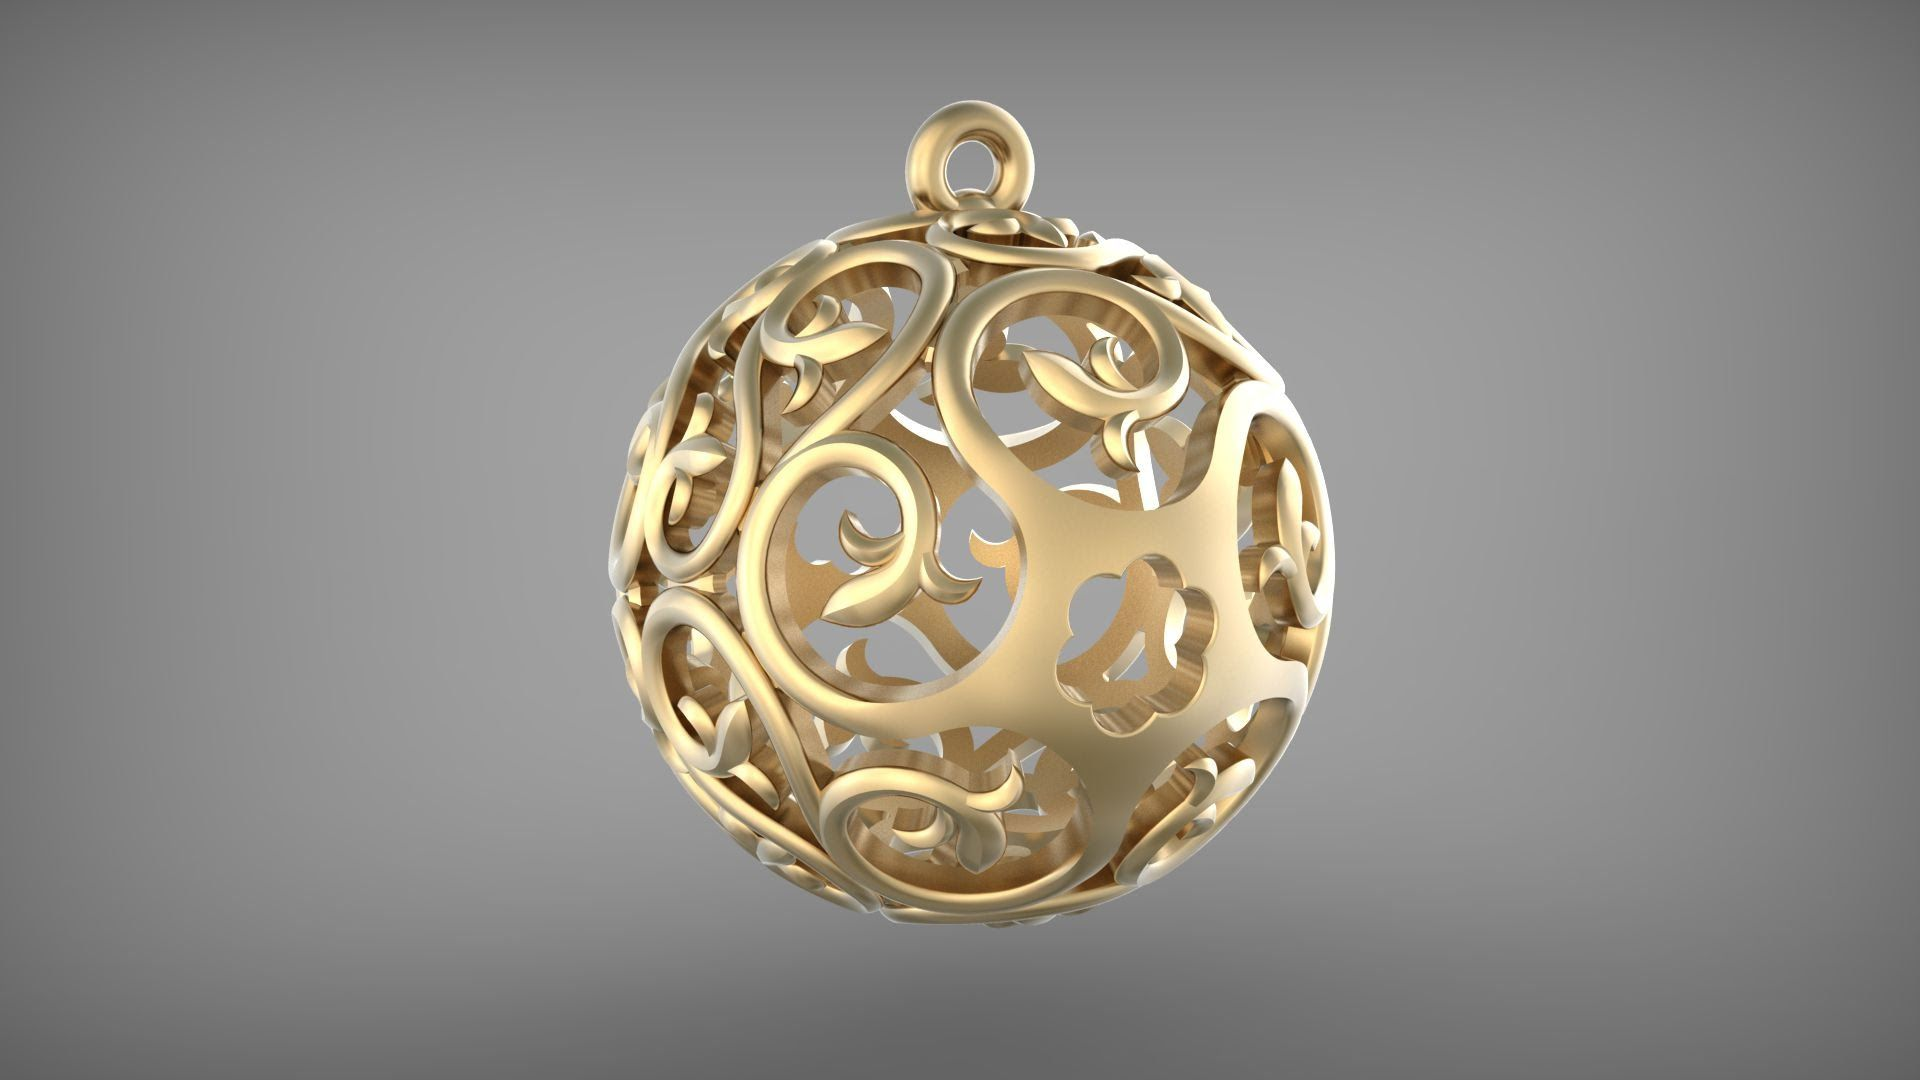 sphere ball with ornament rhinoceros sphere ball with ornament rhinoceros tutorial baditri Choice Image